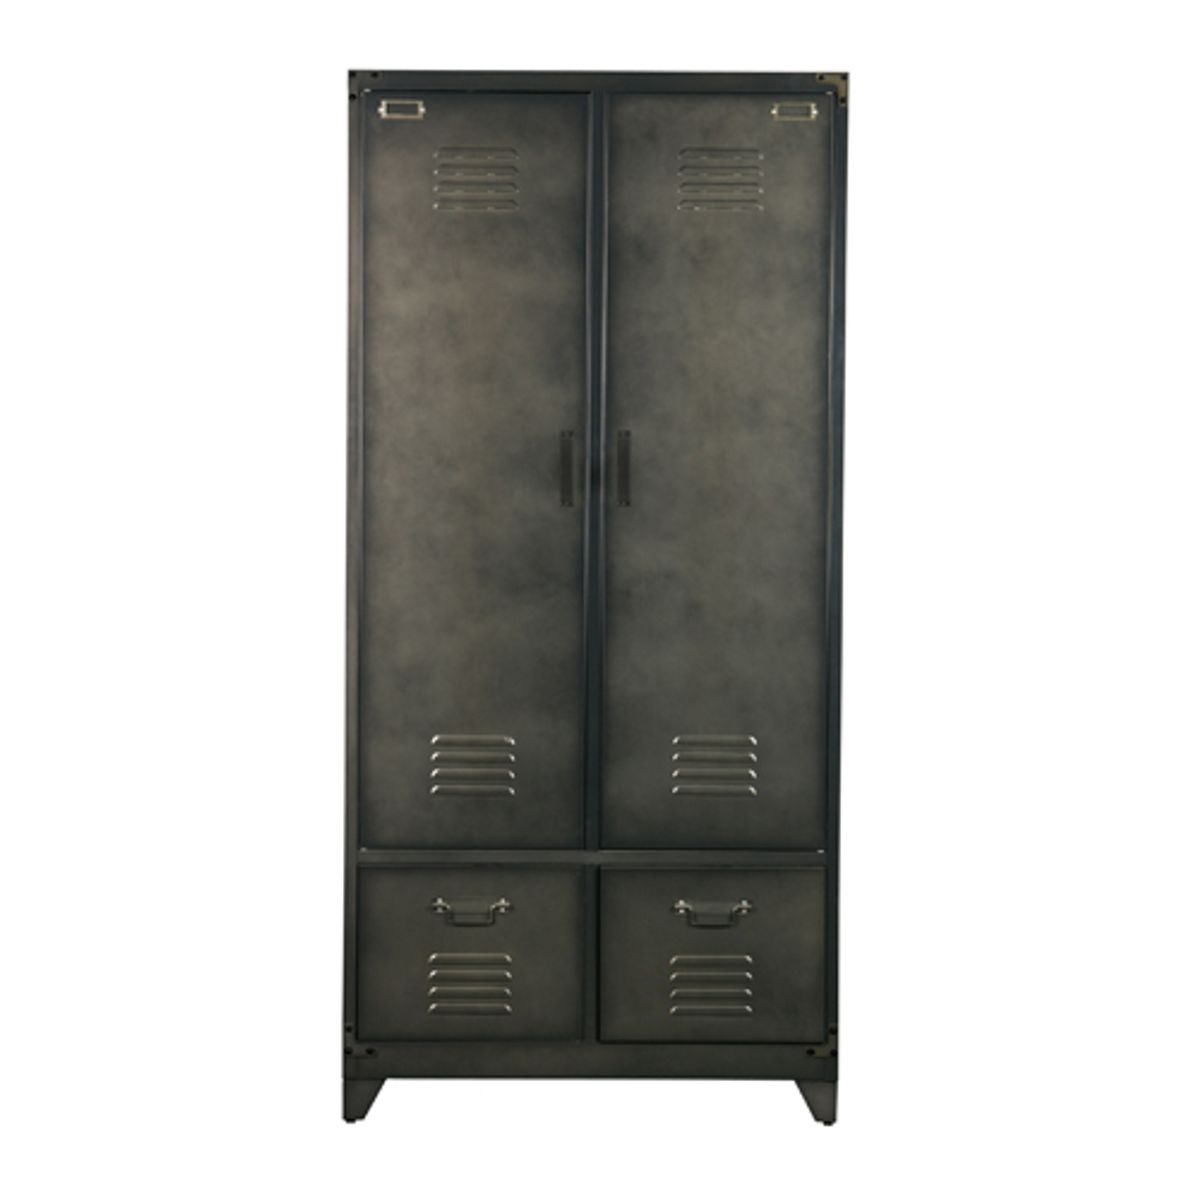 Armoire Casier Metal Noir 1 Penderie 3 Etageres 2 Tiroirs Locker